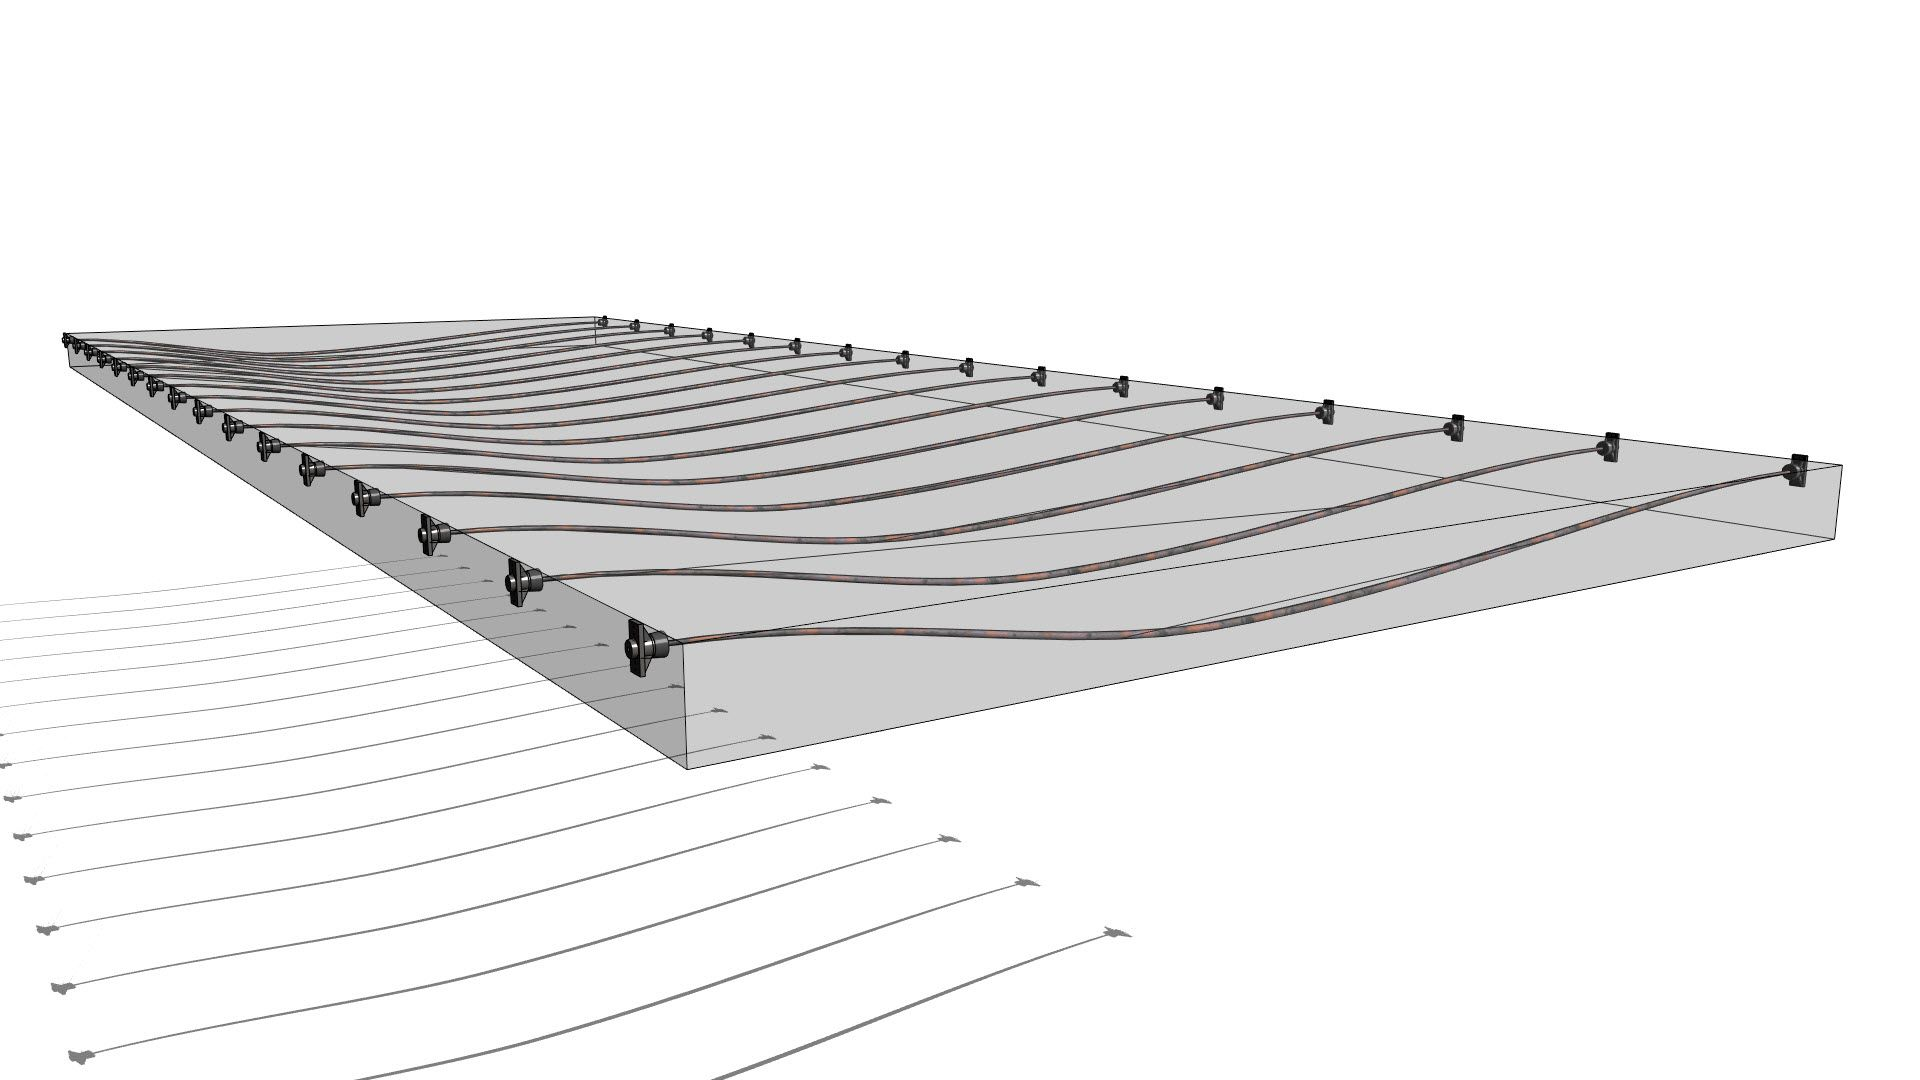 Post Tension Structures In Revit Post Tension Tension Structures